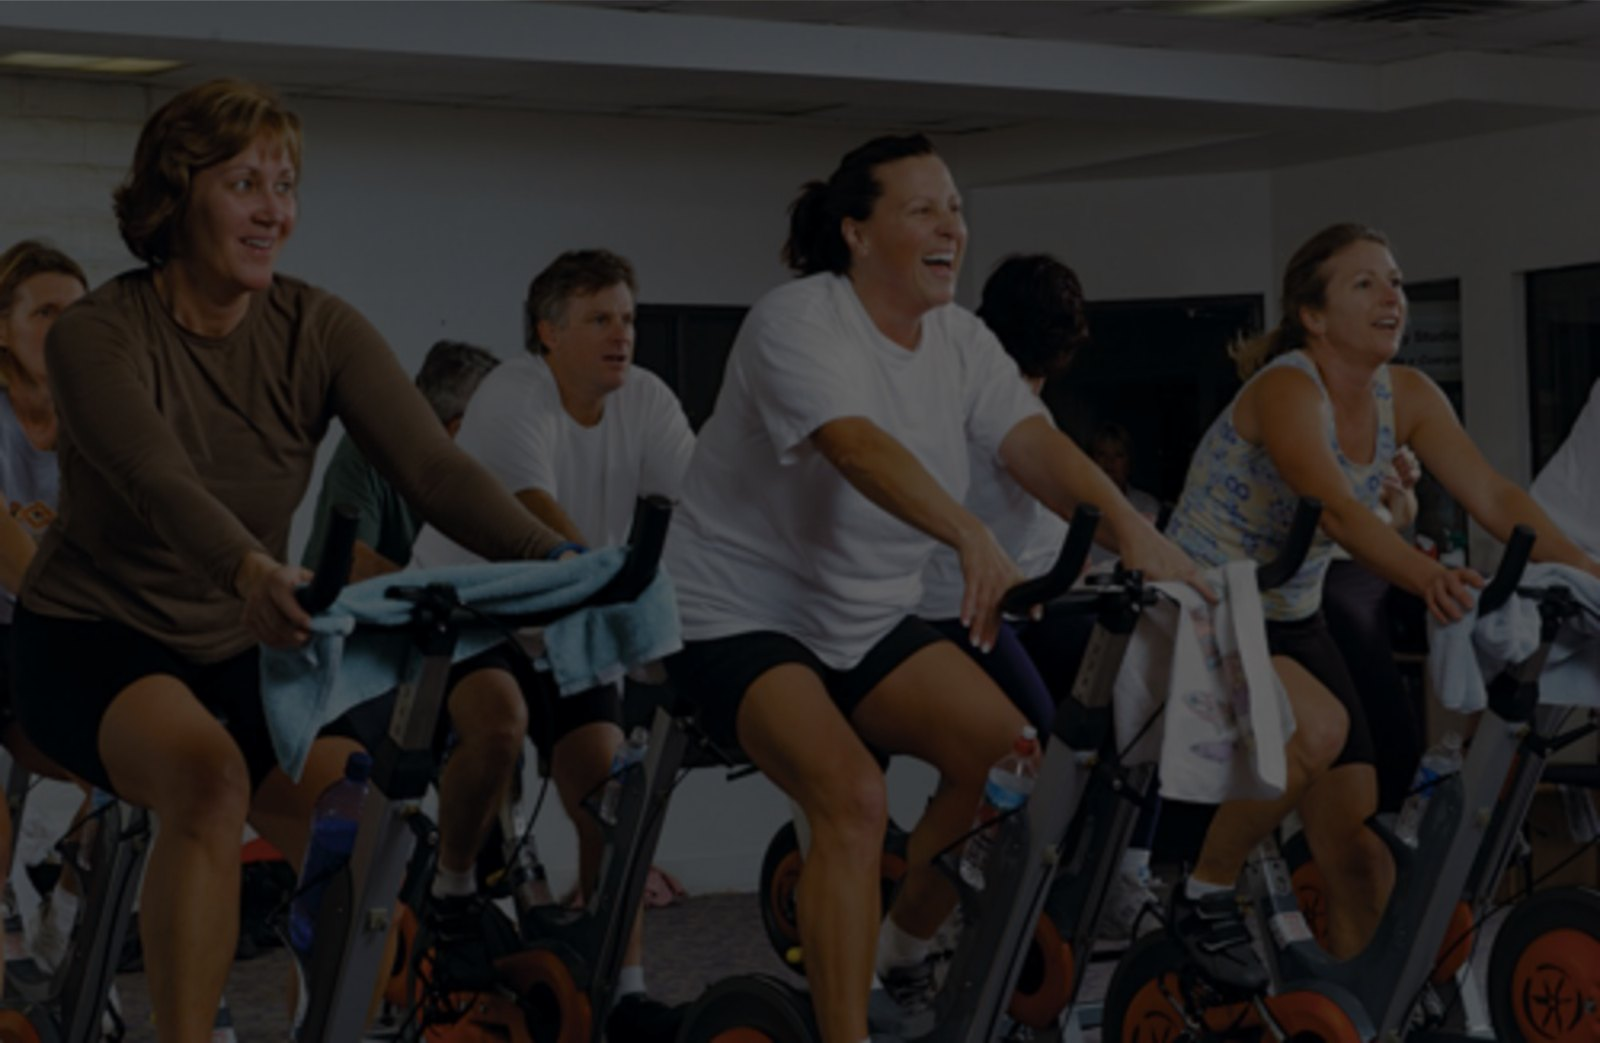 Club Physical cycling classes